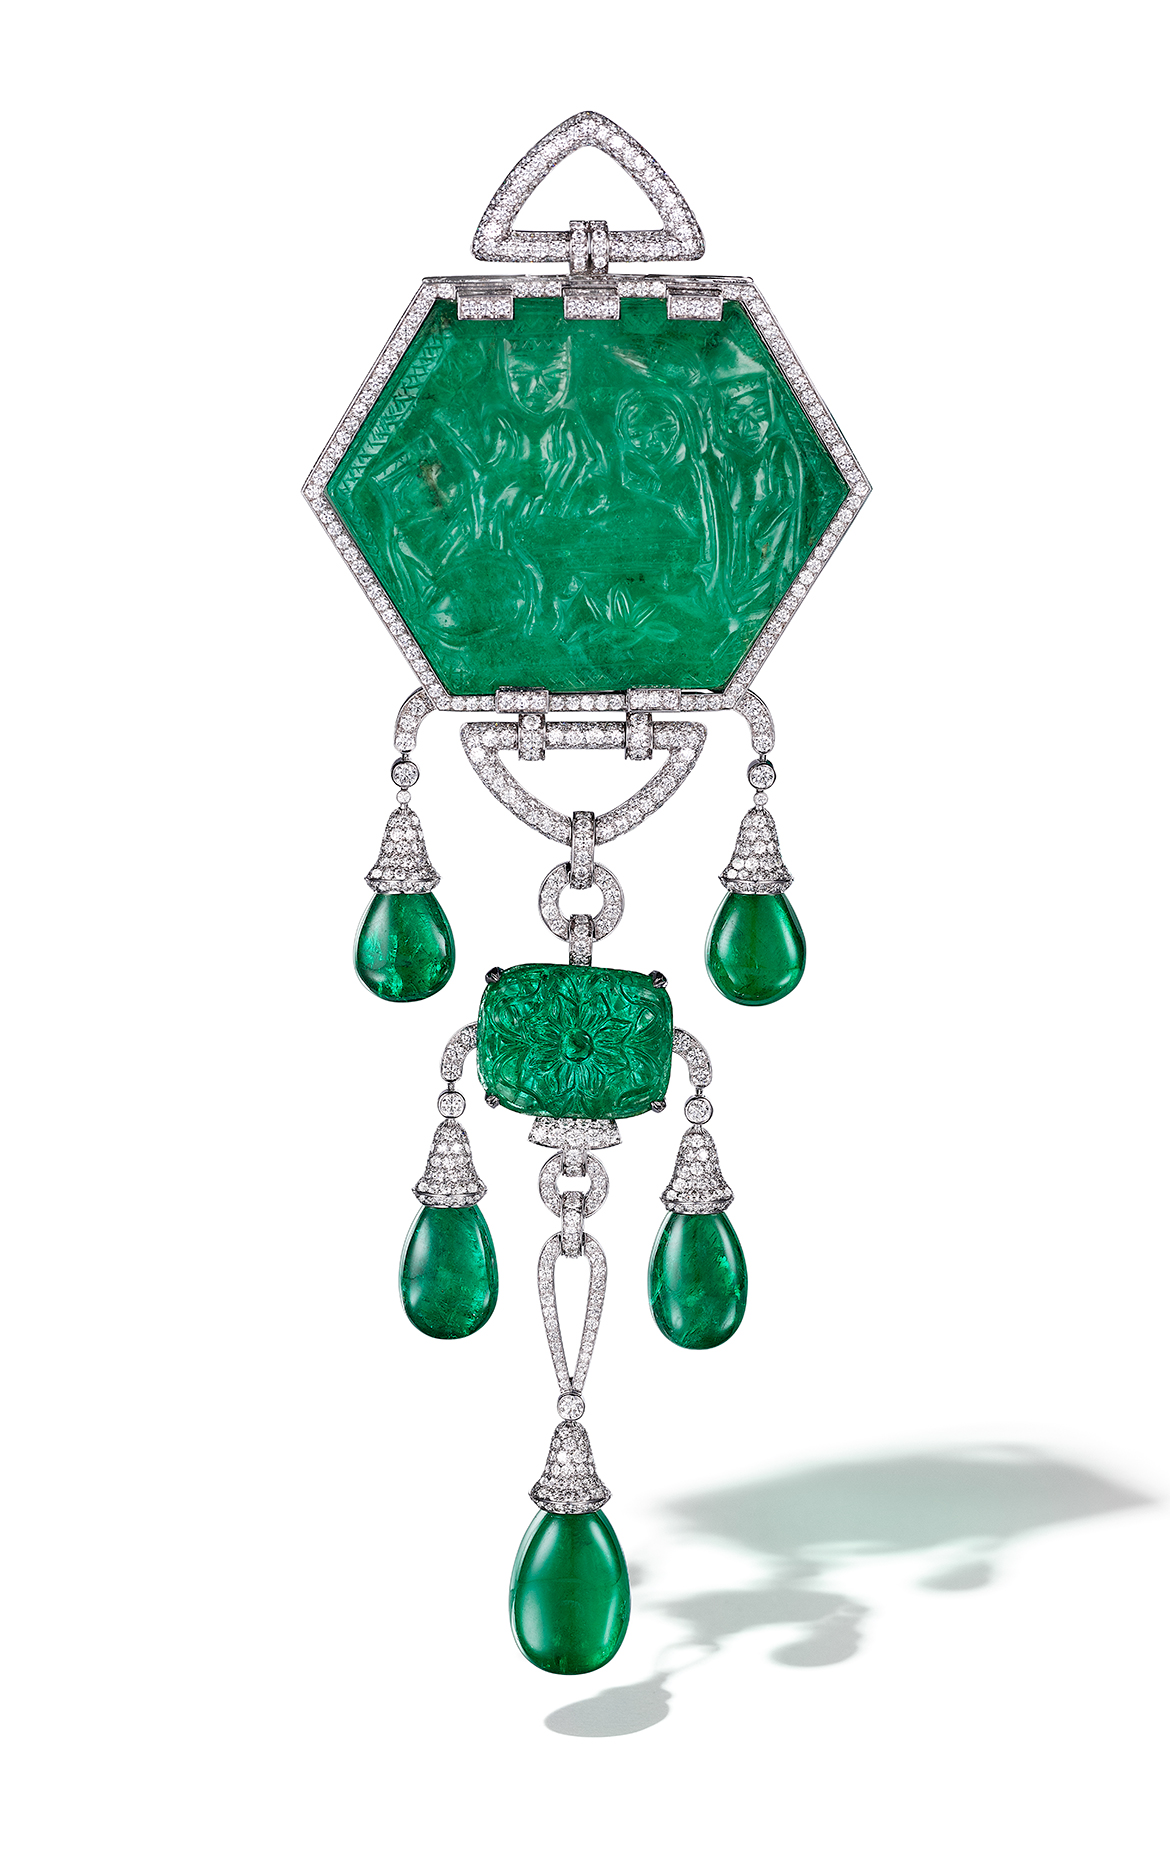 Moghul Emerald Cartier Brooch